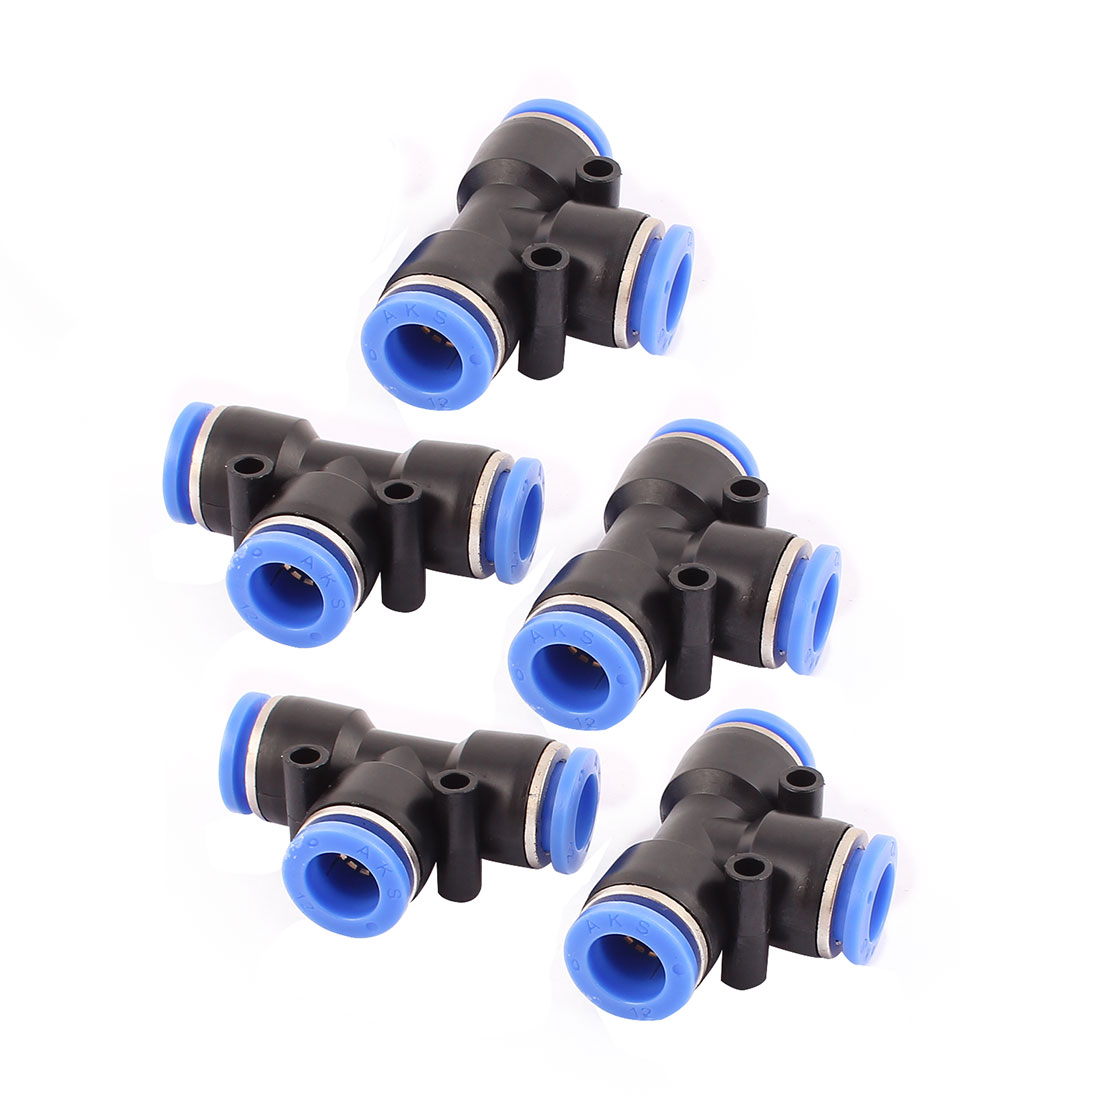 5 Pcs 12mm to 12mm T Shaped 3 Way Air Pneumatic Quick Fitting Coupler Black Blue